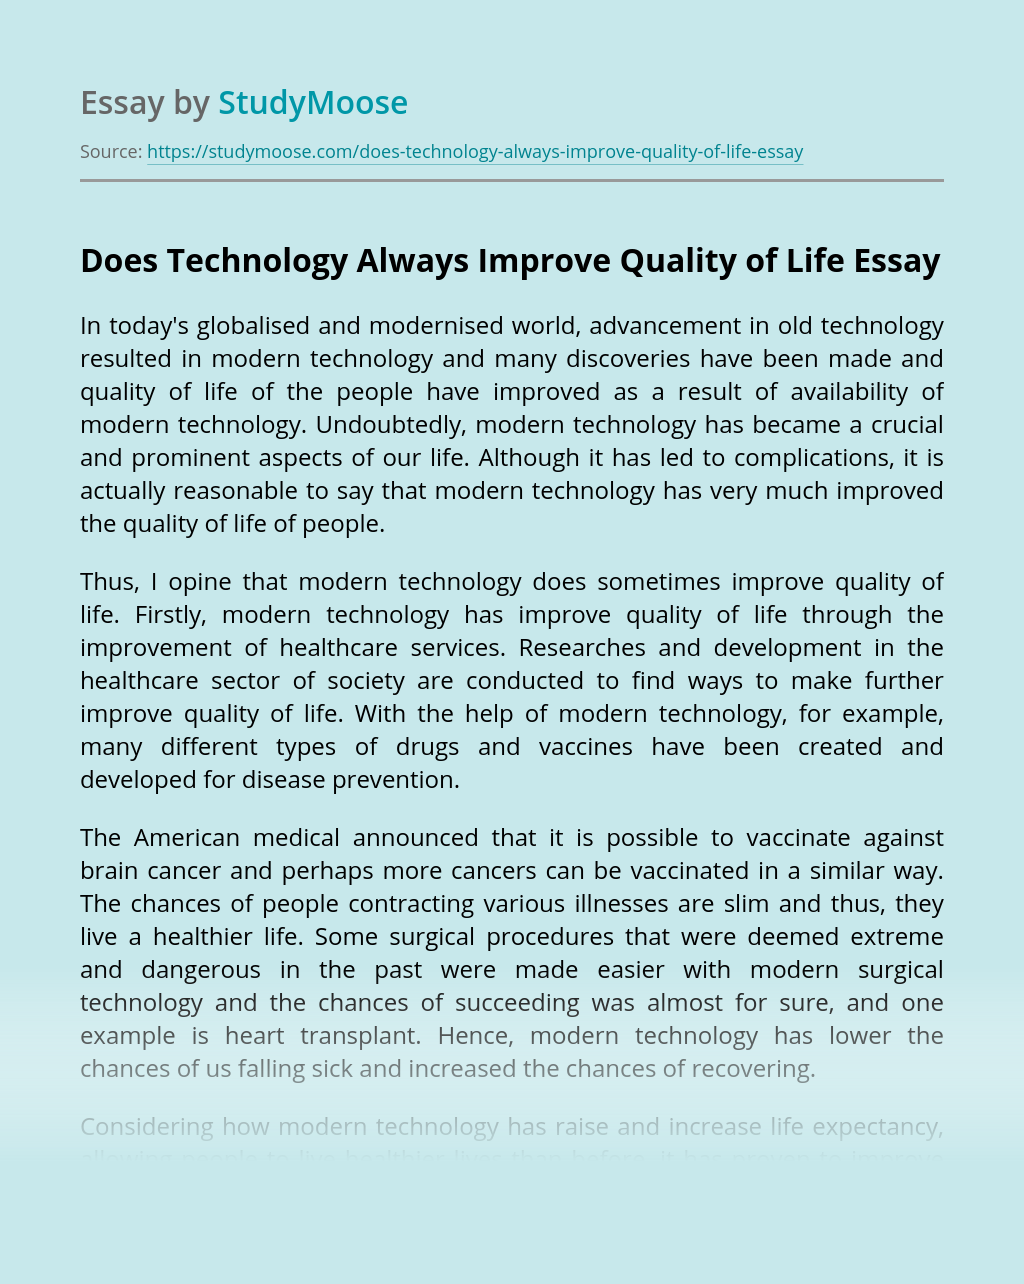 Does Technology Always Improve Quality of Life